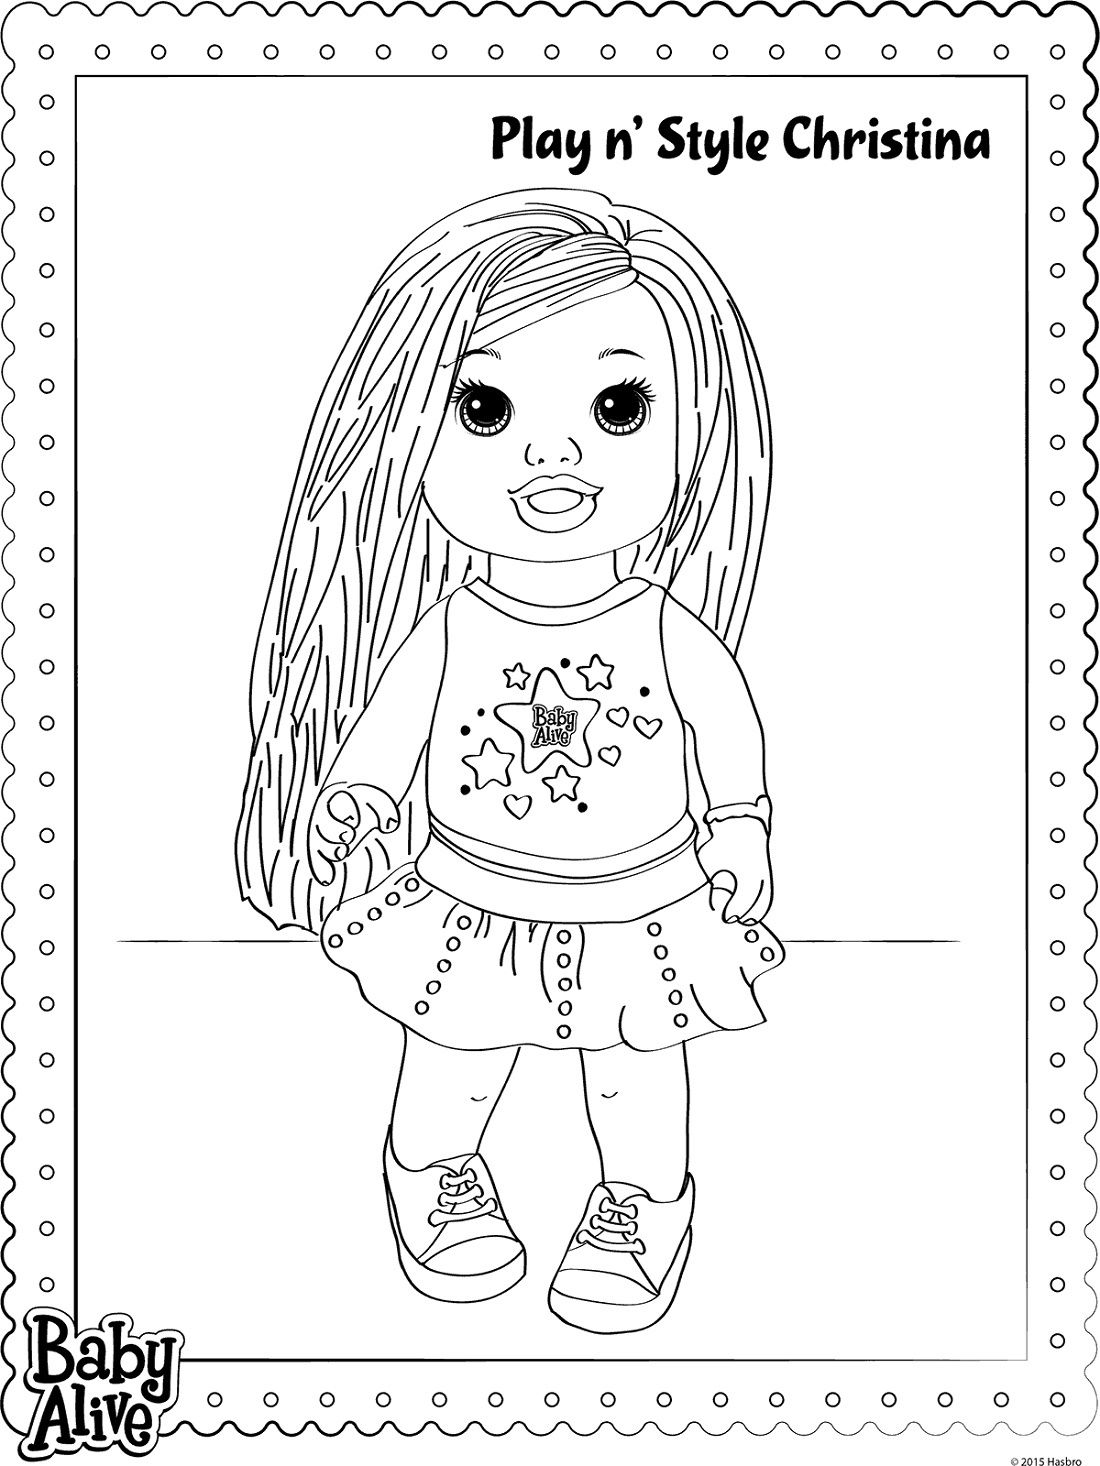 Christina Baby Alive Coloring Pages K5 Worksheets Baby Alive Sailor Moon Coloring Pages Baby Coloring Pages